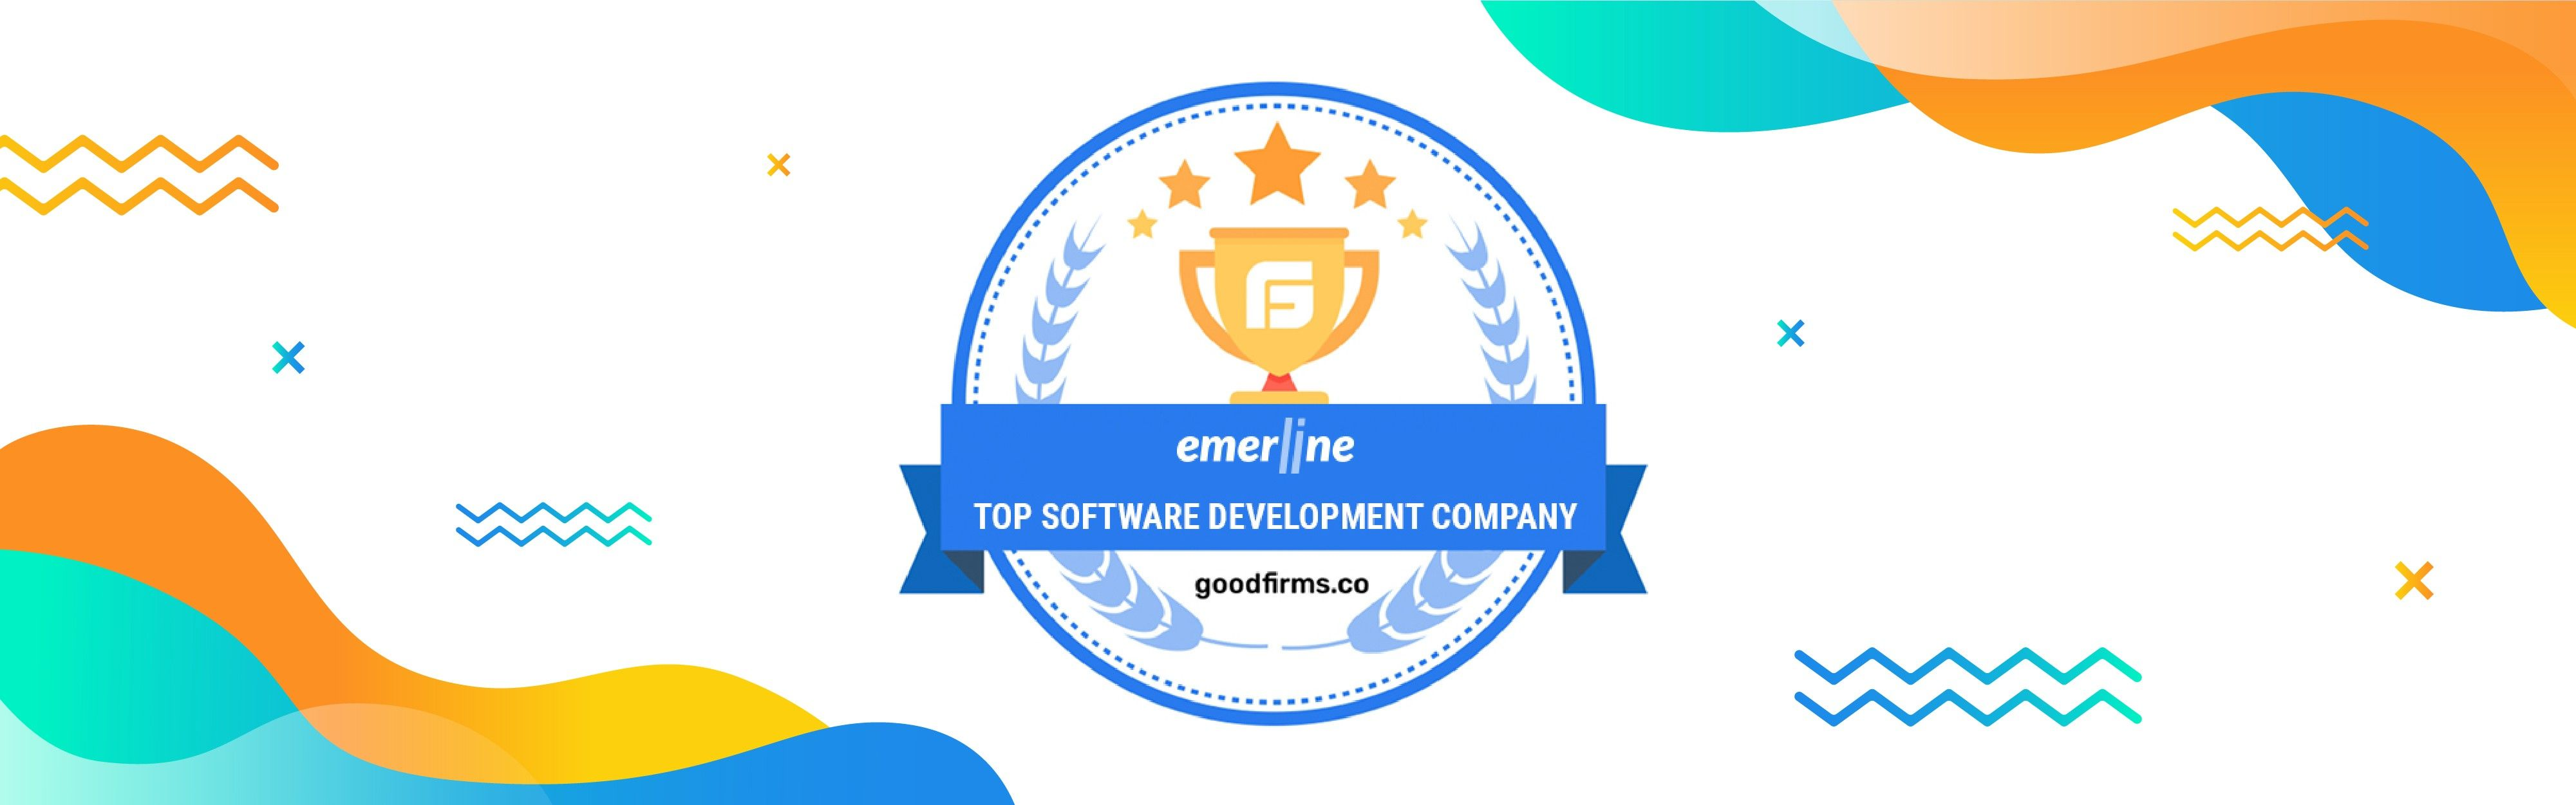 Emerline Is Ranked As a Top Software Development Company By GoodFirms